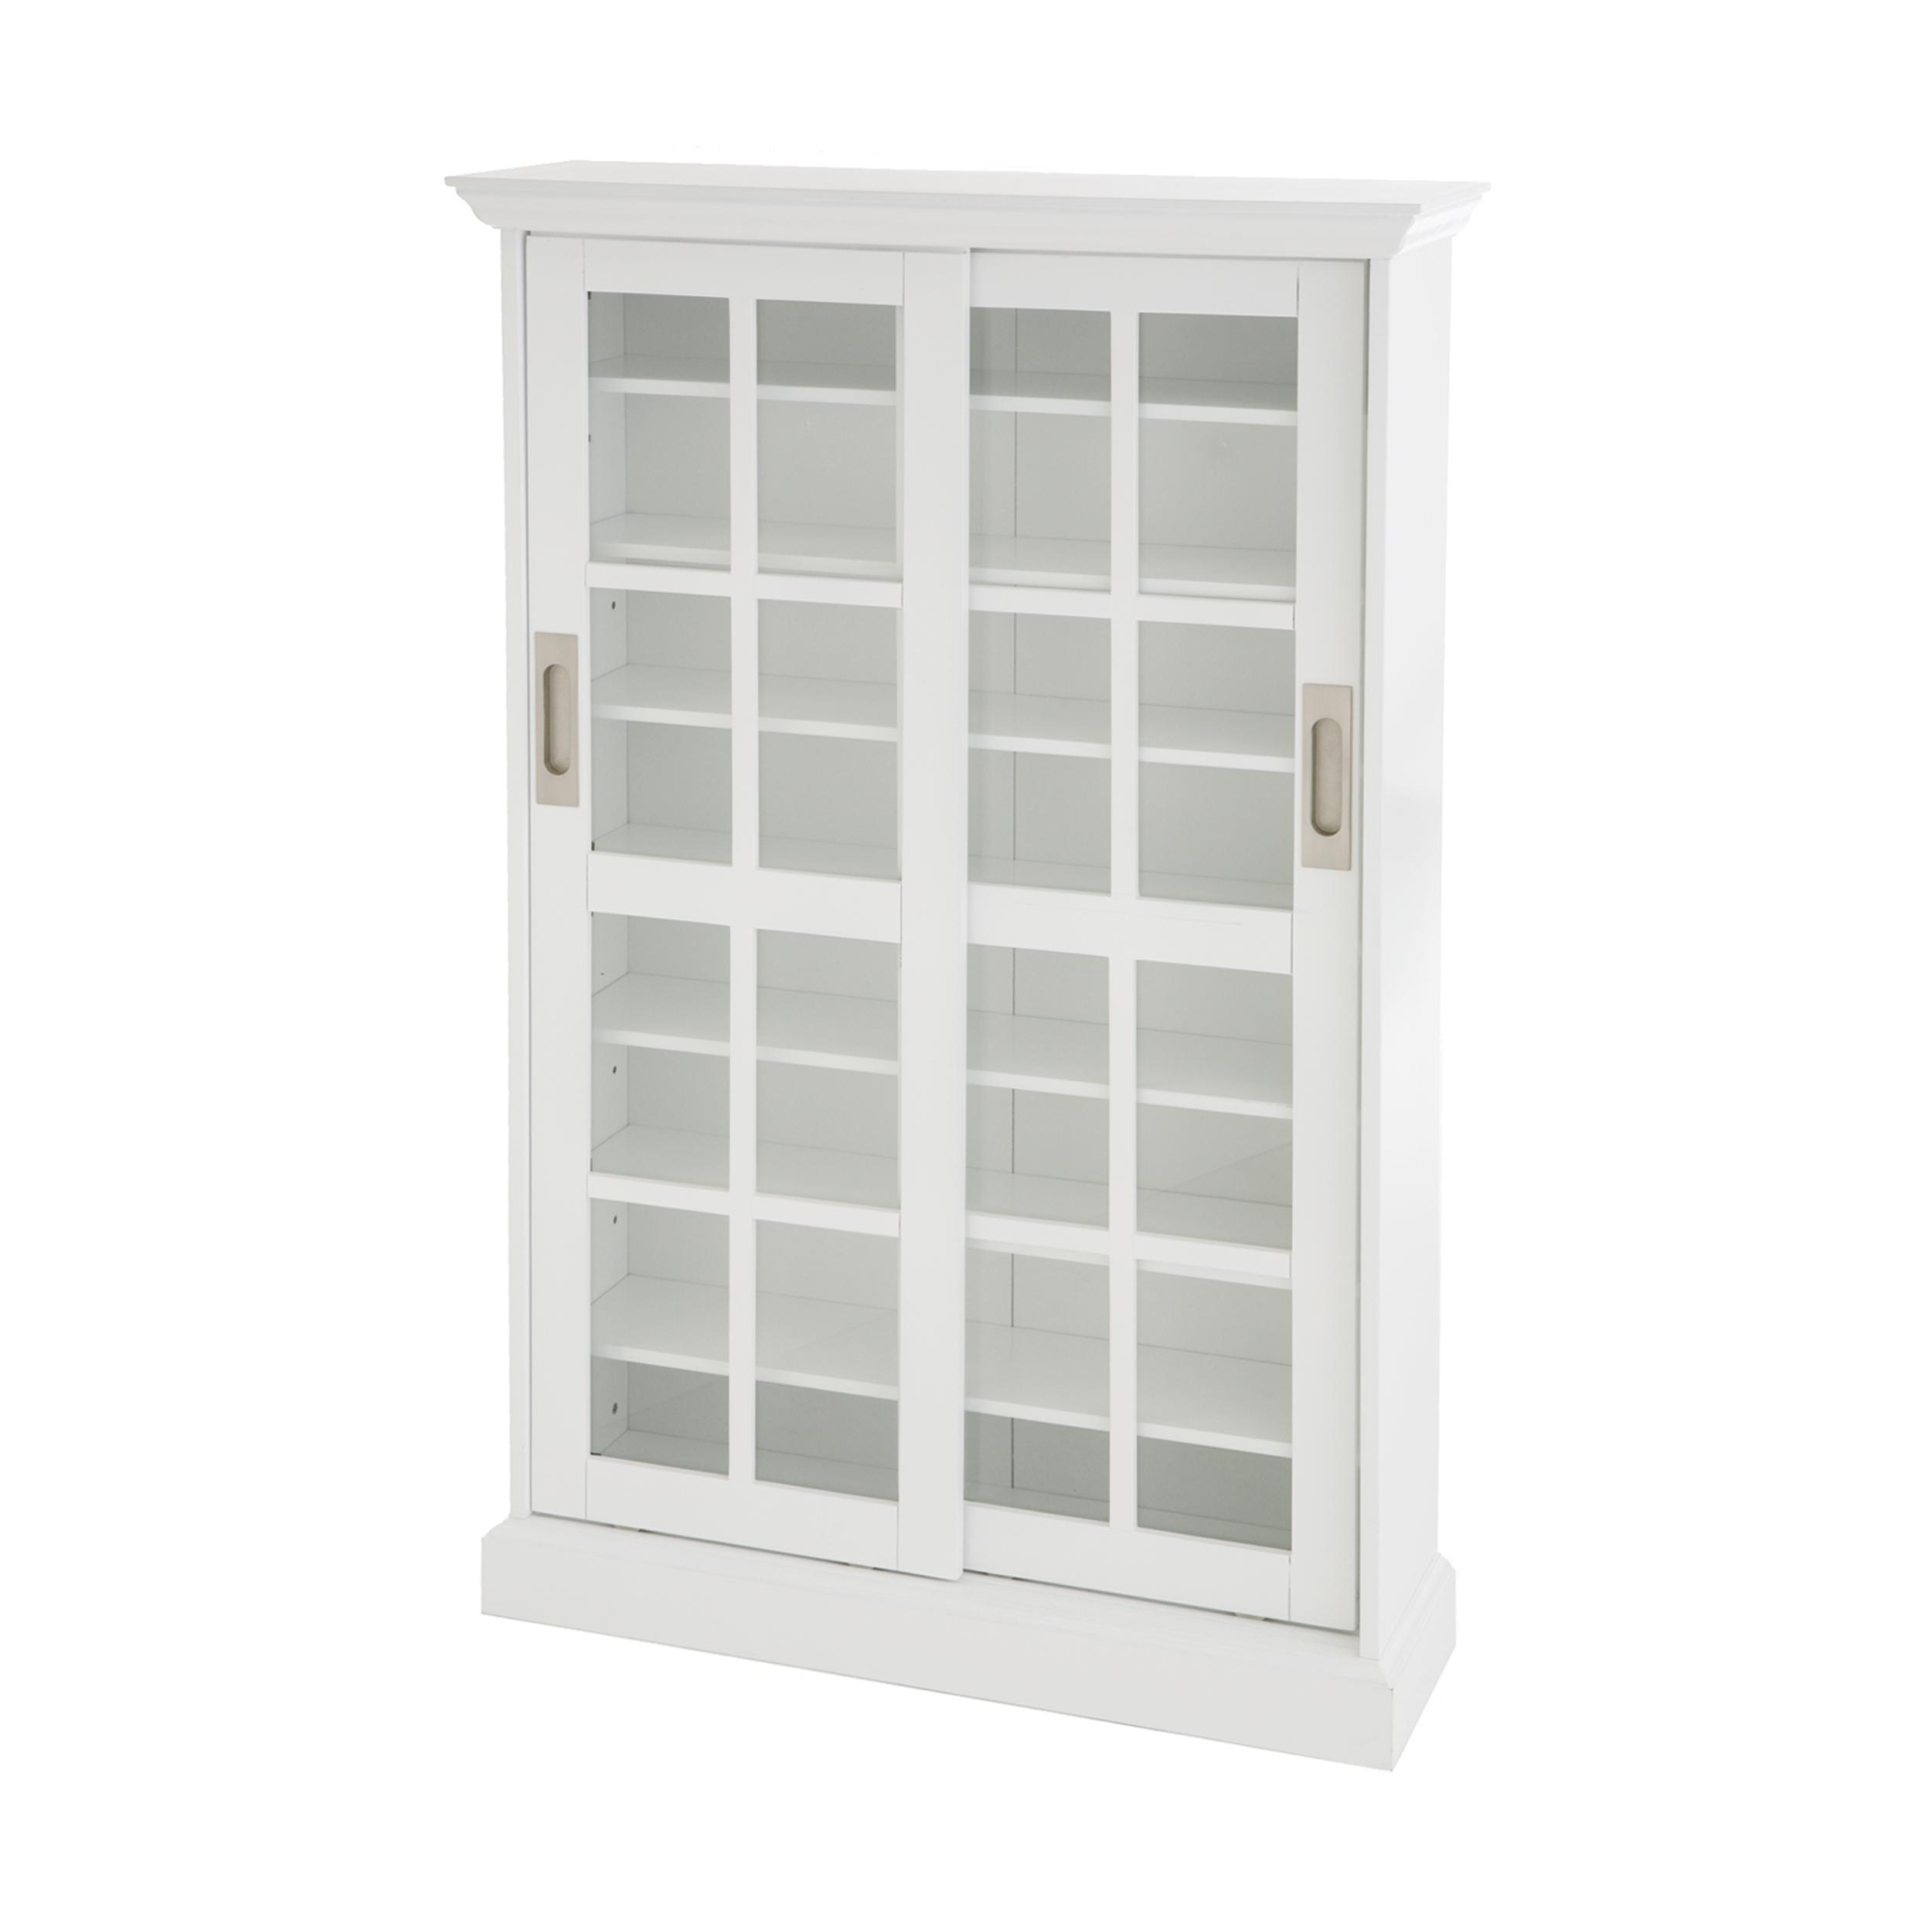 View larger Glass cabinet doors